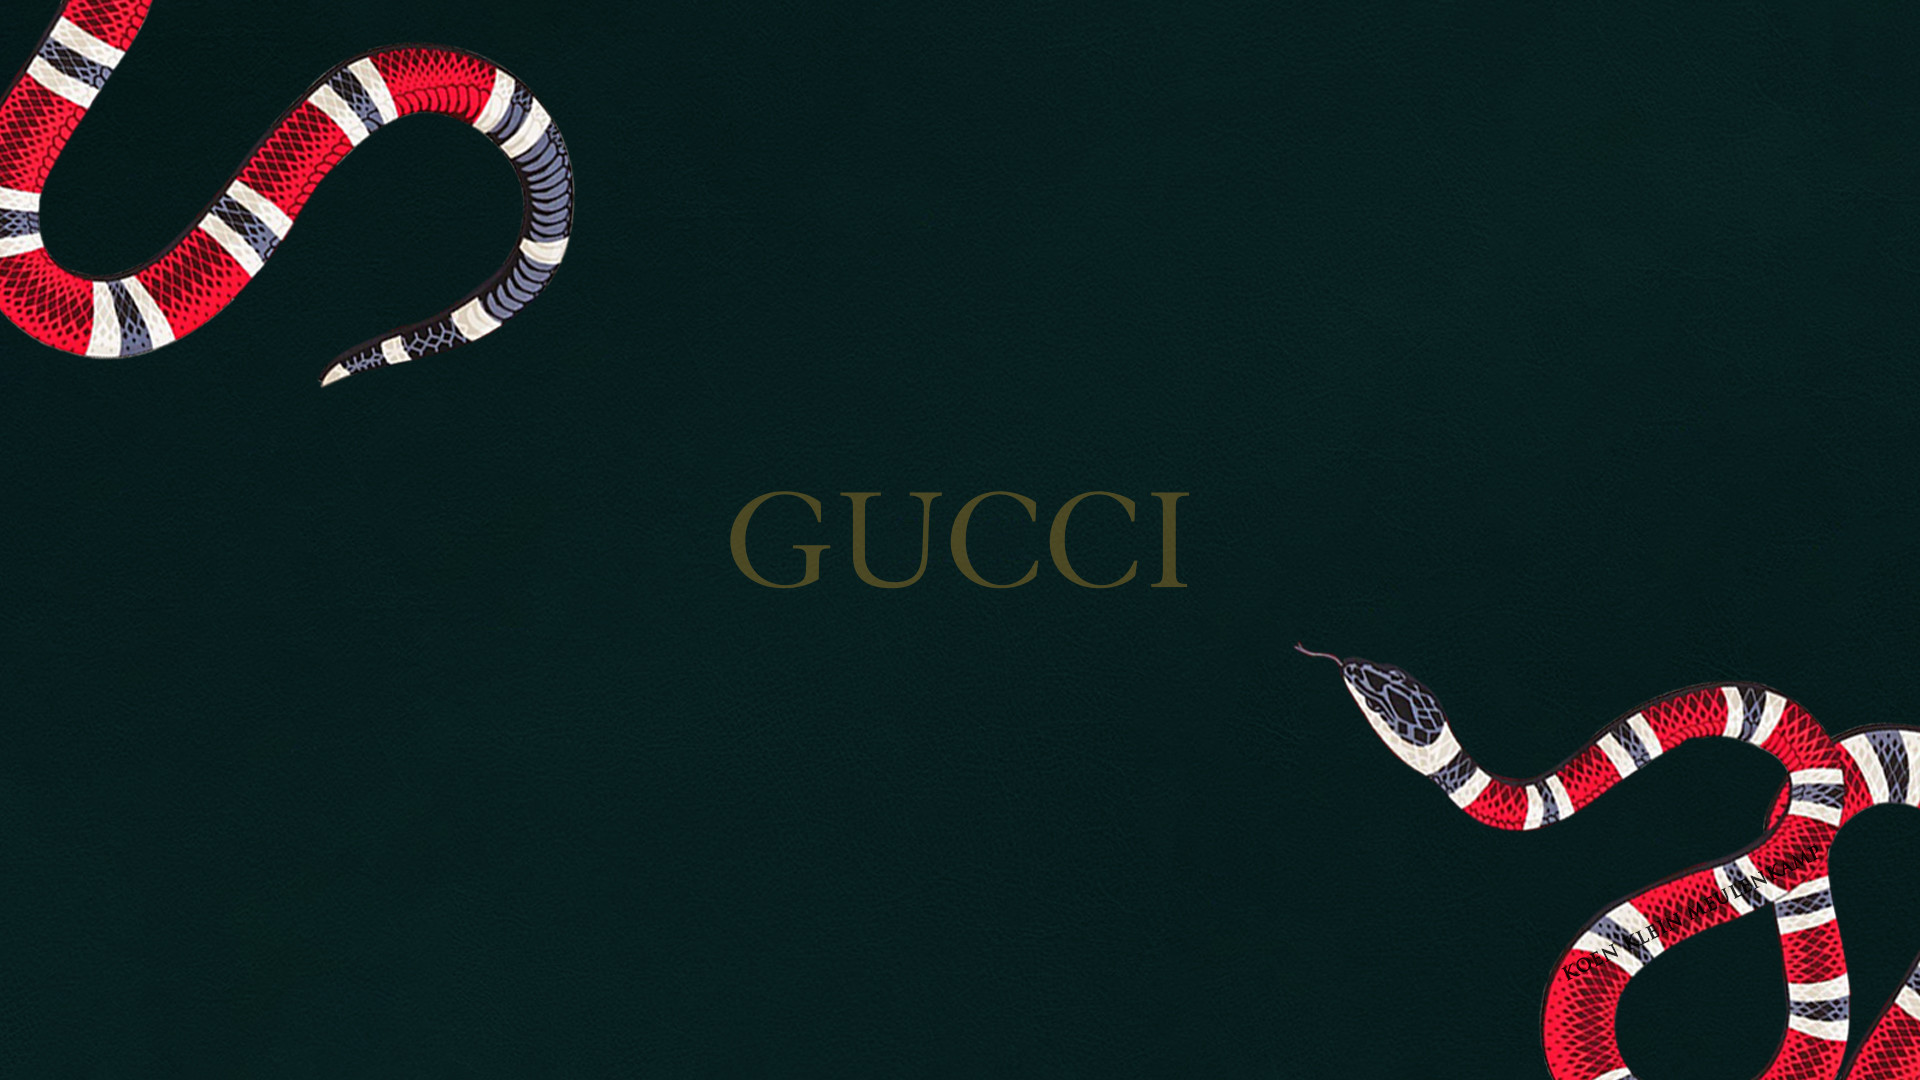 Gucci Logo Images Wallpaper The Art of Mike Mignola 1920x1080